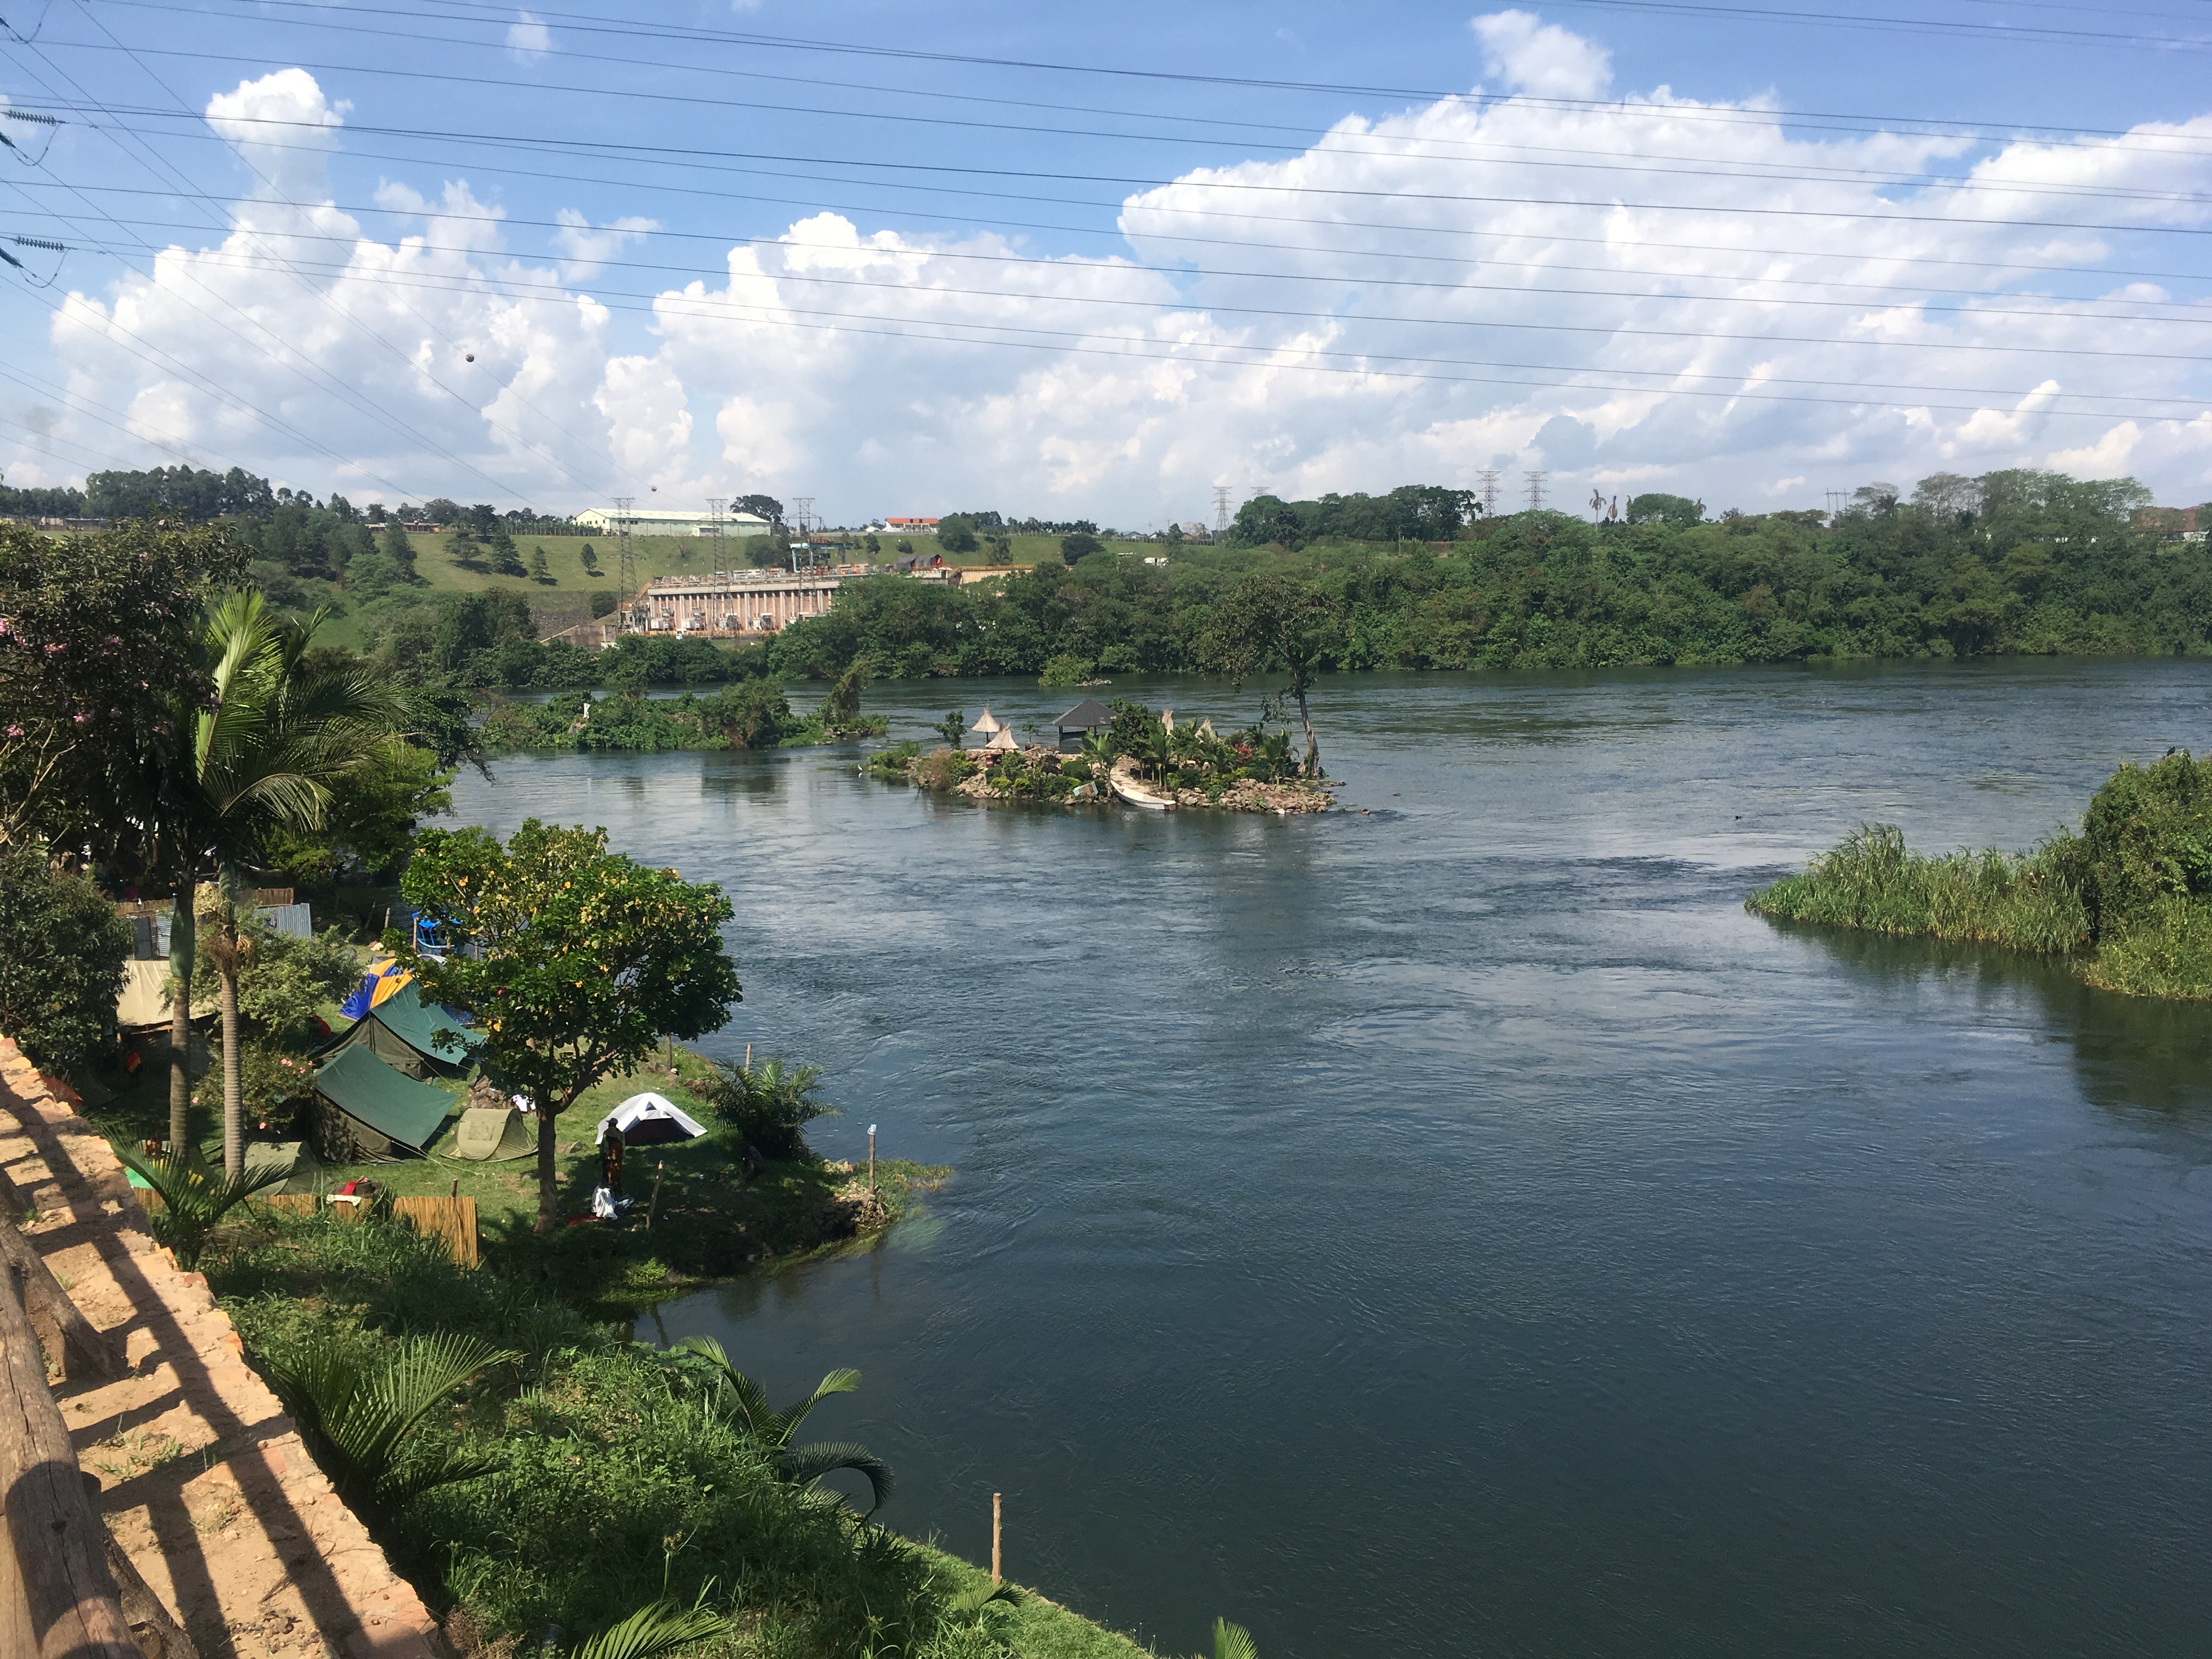 View of the Nile, with green banks on both sides and a blue sky full of puffy clouds above